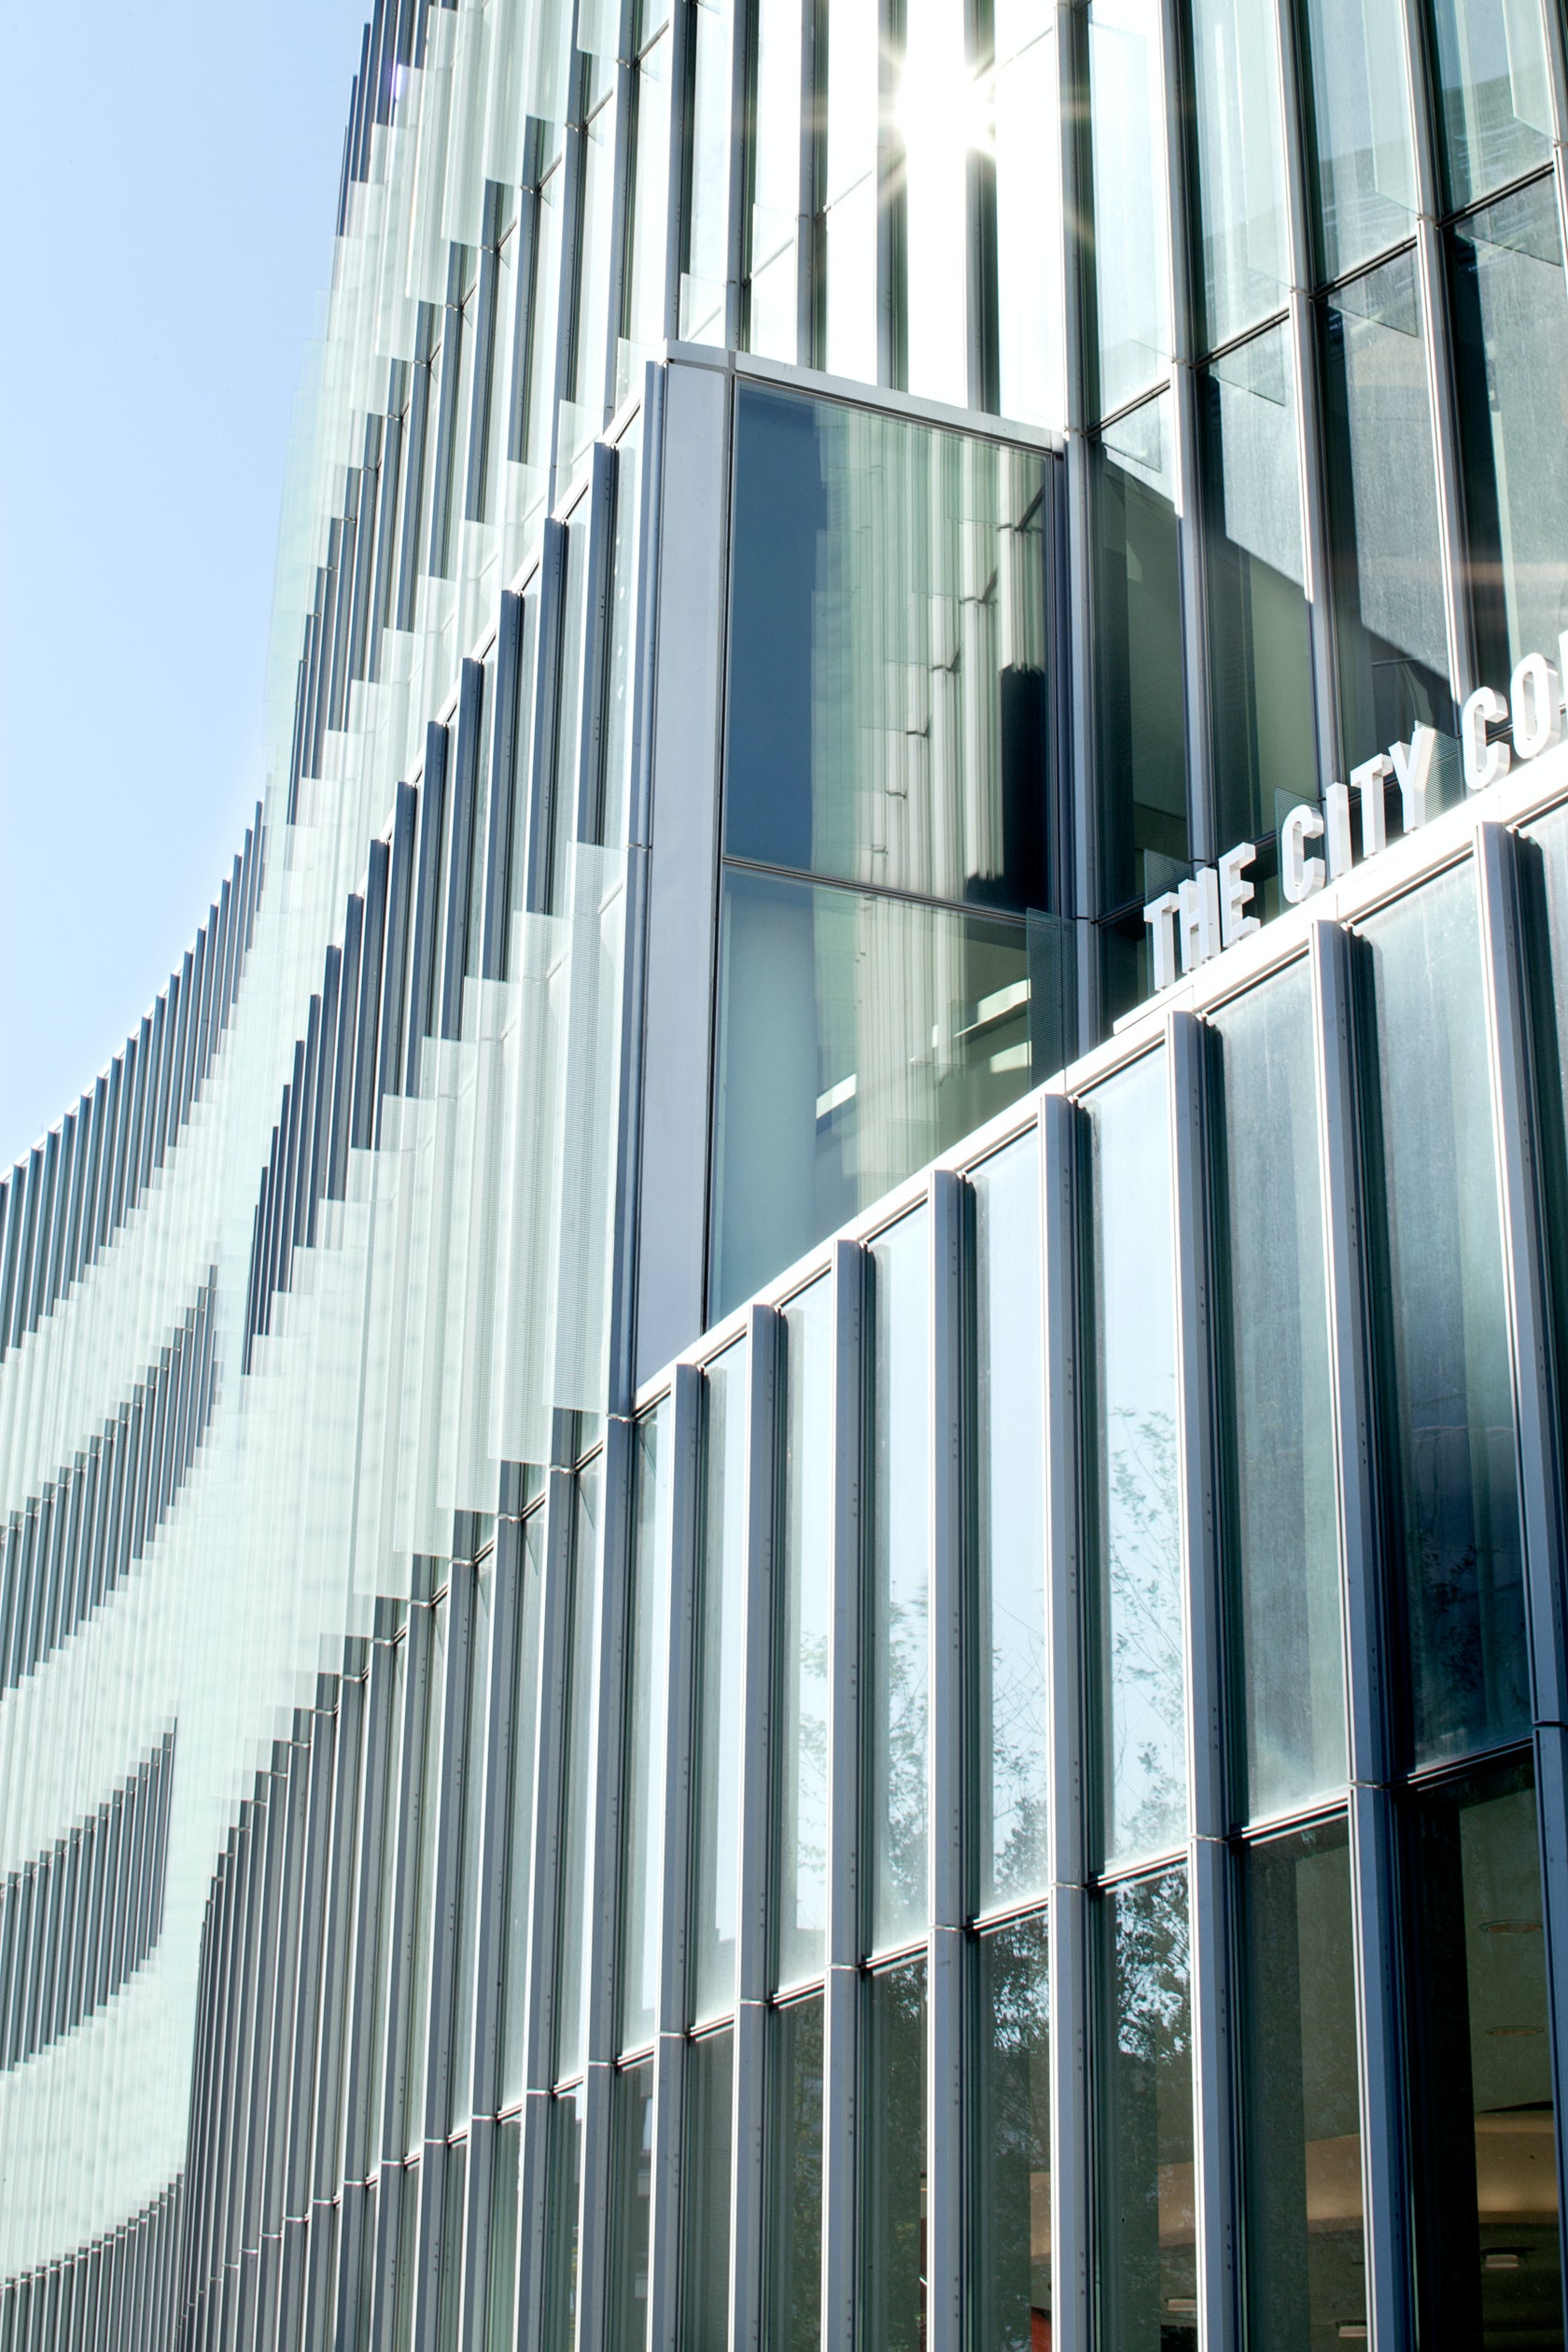 The CUNY Advanced Science and Research Center & The City